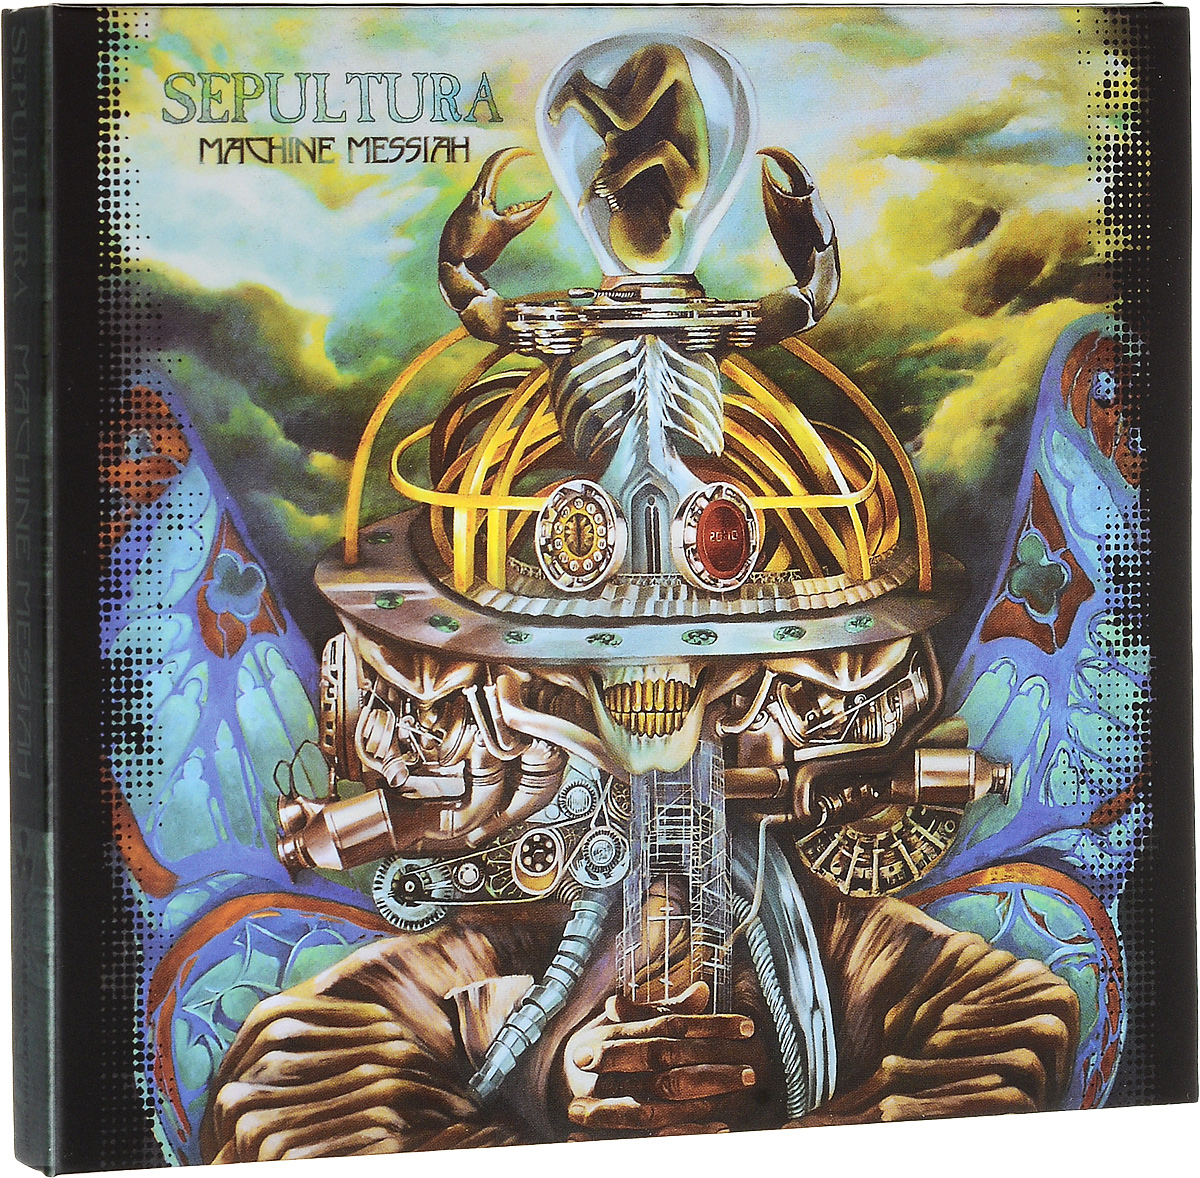 Sepultura Sepultura. Machine Messiah (CD + DVD) cntomlv новые кухонные инструменты dumpling jiaozi maker устройство easy diy dumpling mold dumpling wrapper cutter making machine